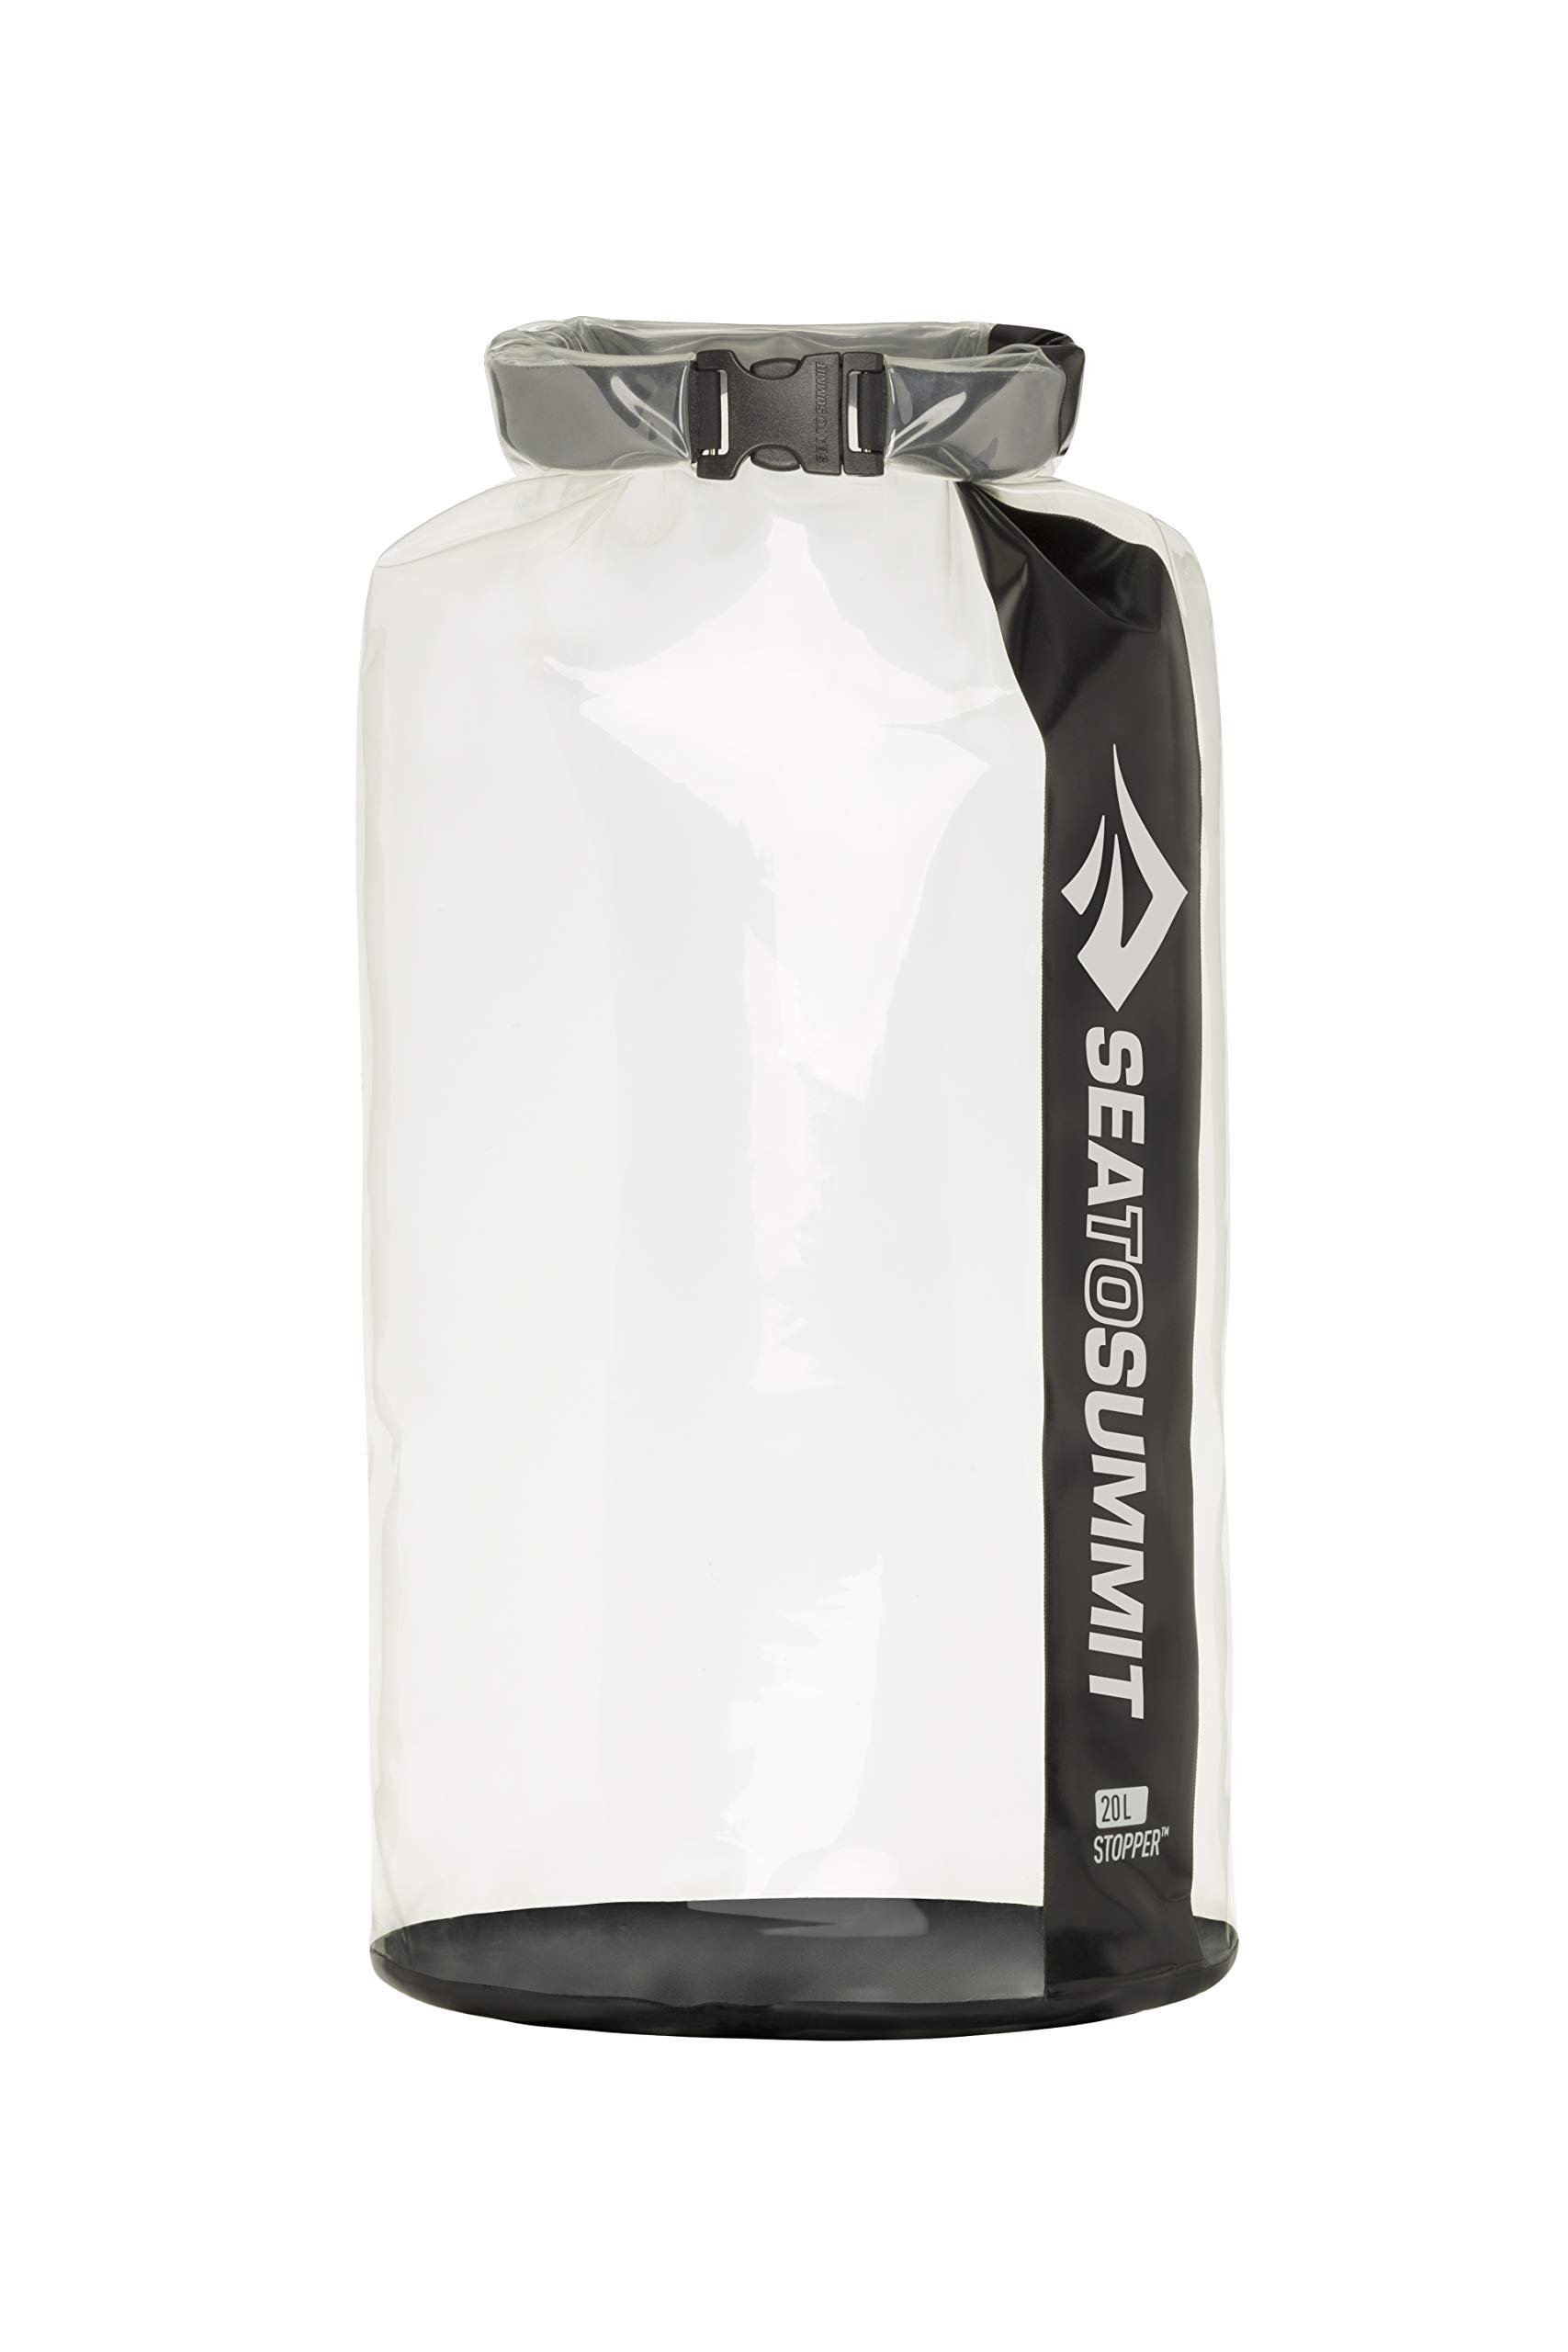 Sea to Summit Clear Stopper Dry Bag, 20 Liter by Sea to Summit